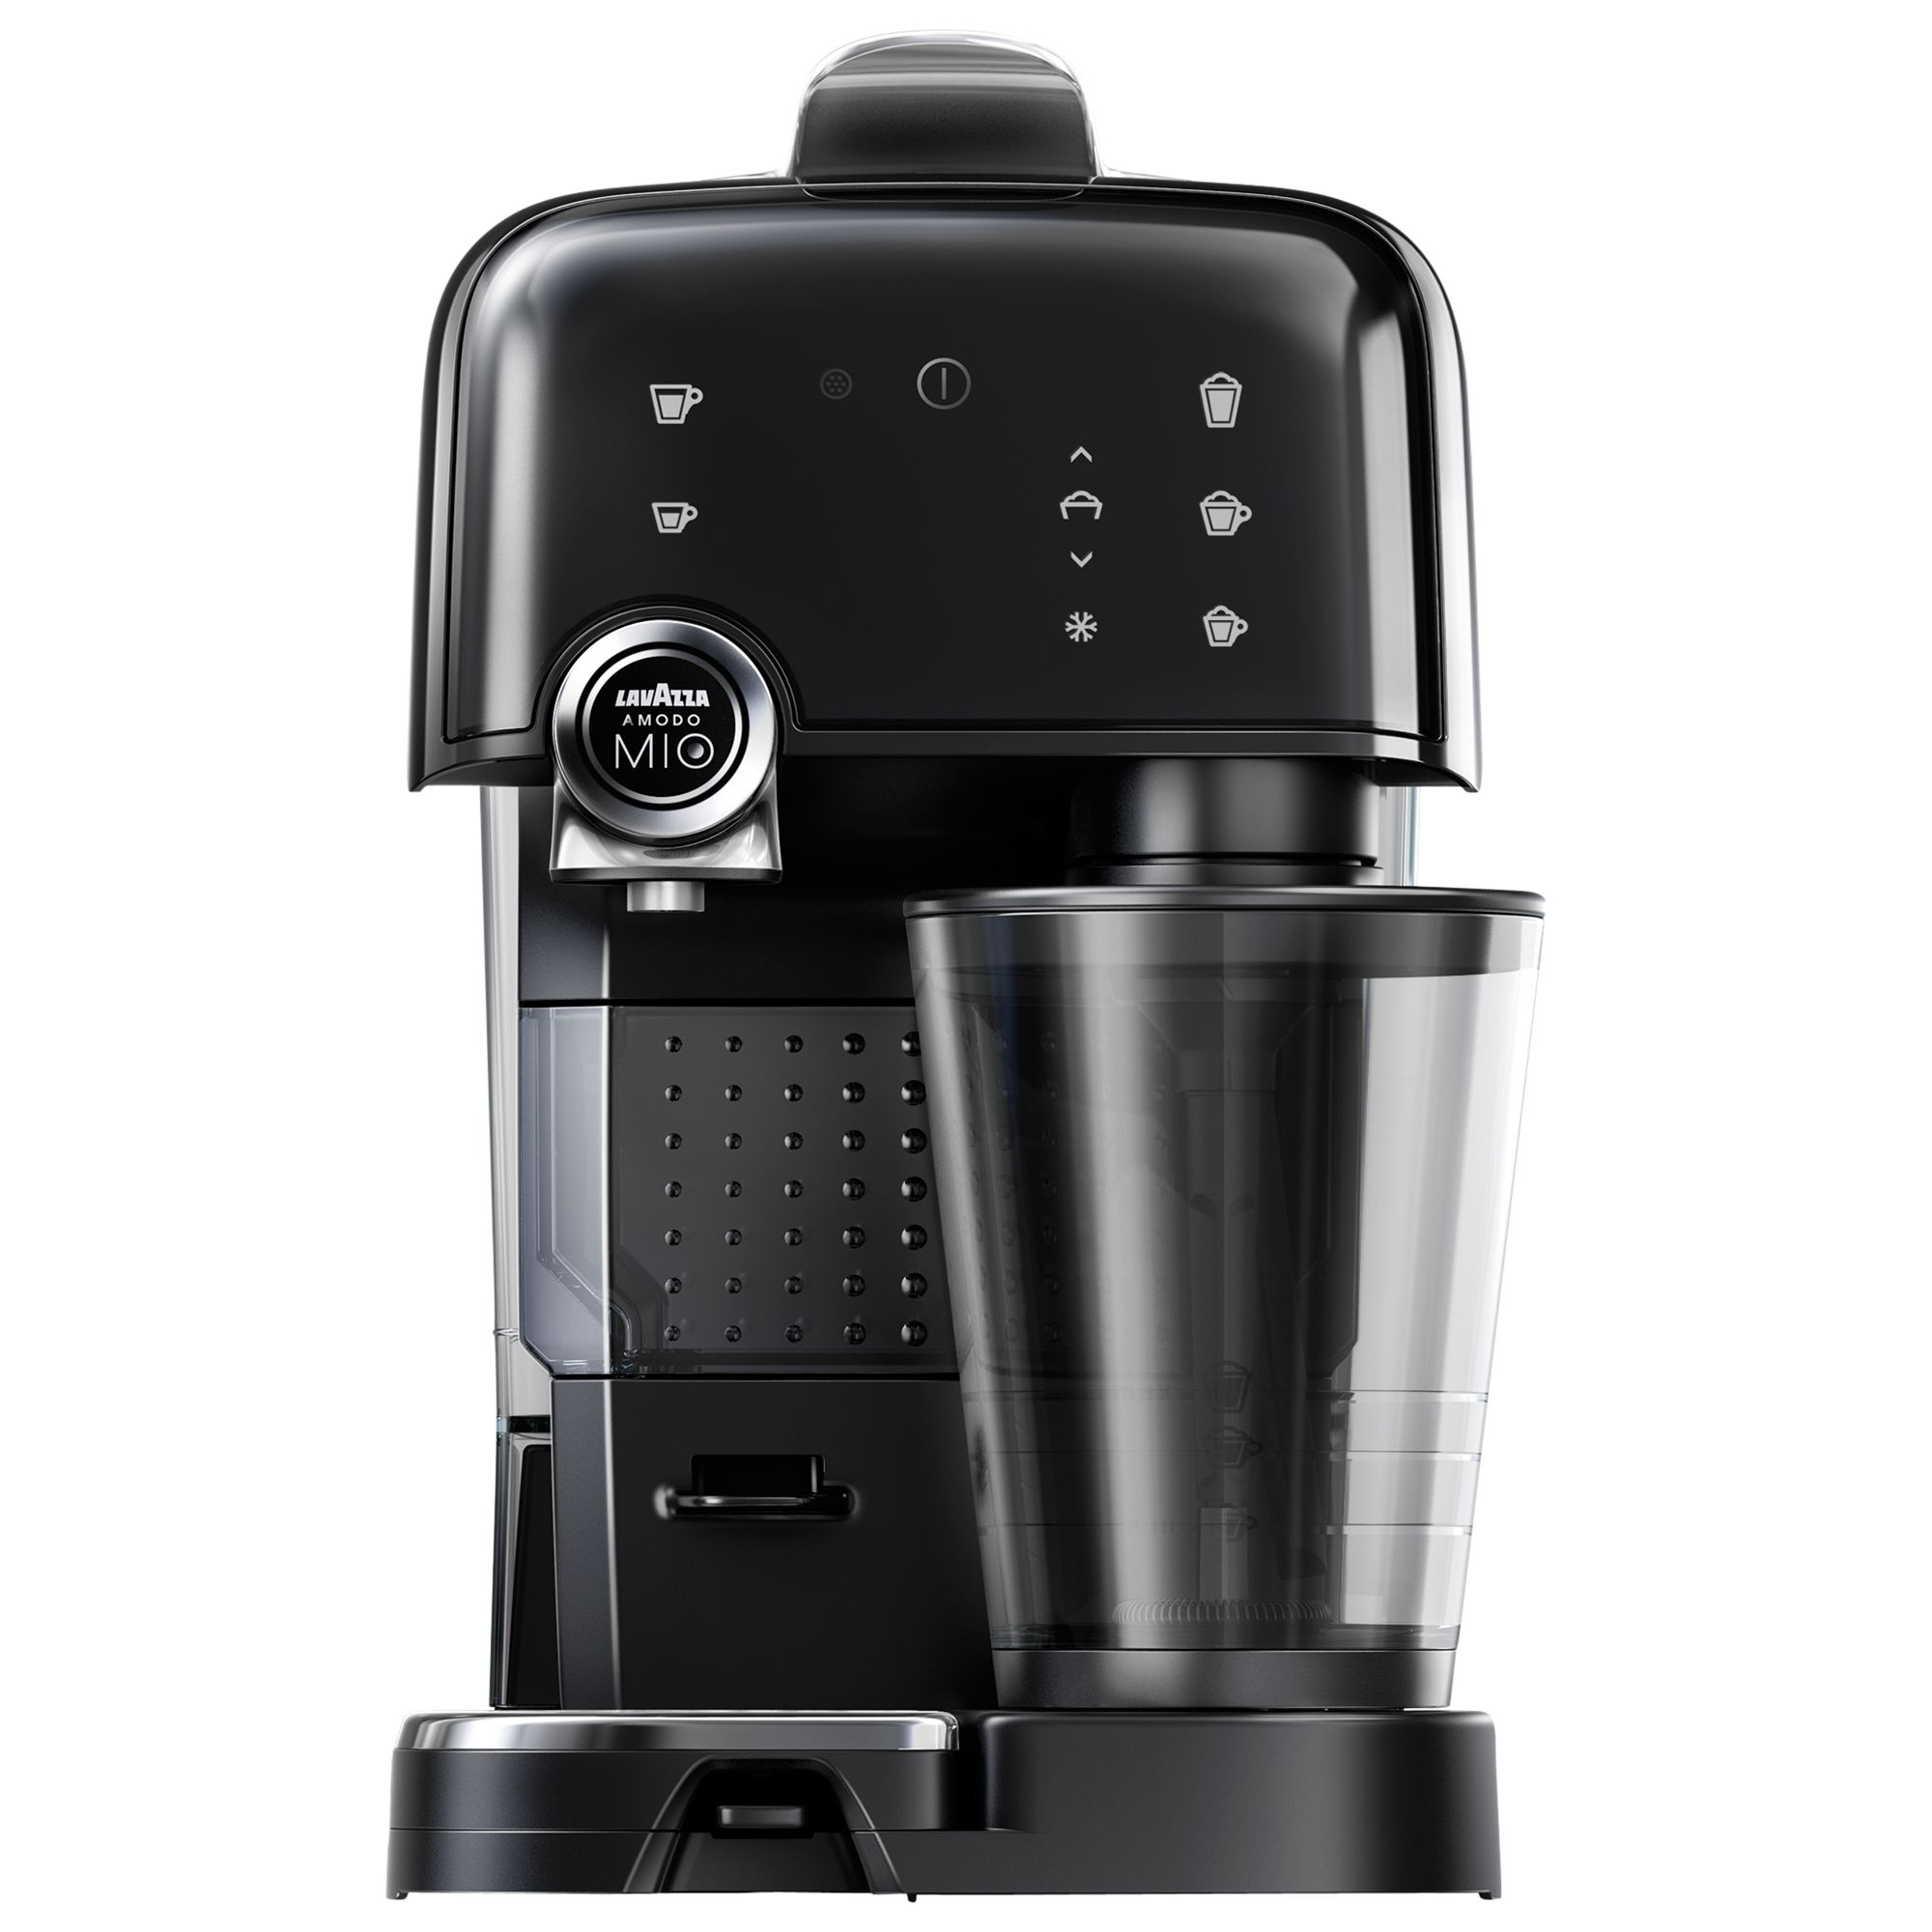 John Lewis Hob Coffee Maker : Buy Lavazza A Modo Mio Fantasia LM7000 Cappuccino Latte Coffee Machine John Lewis